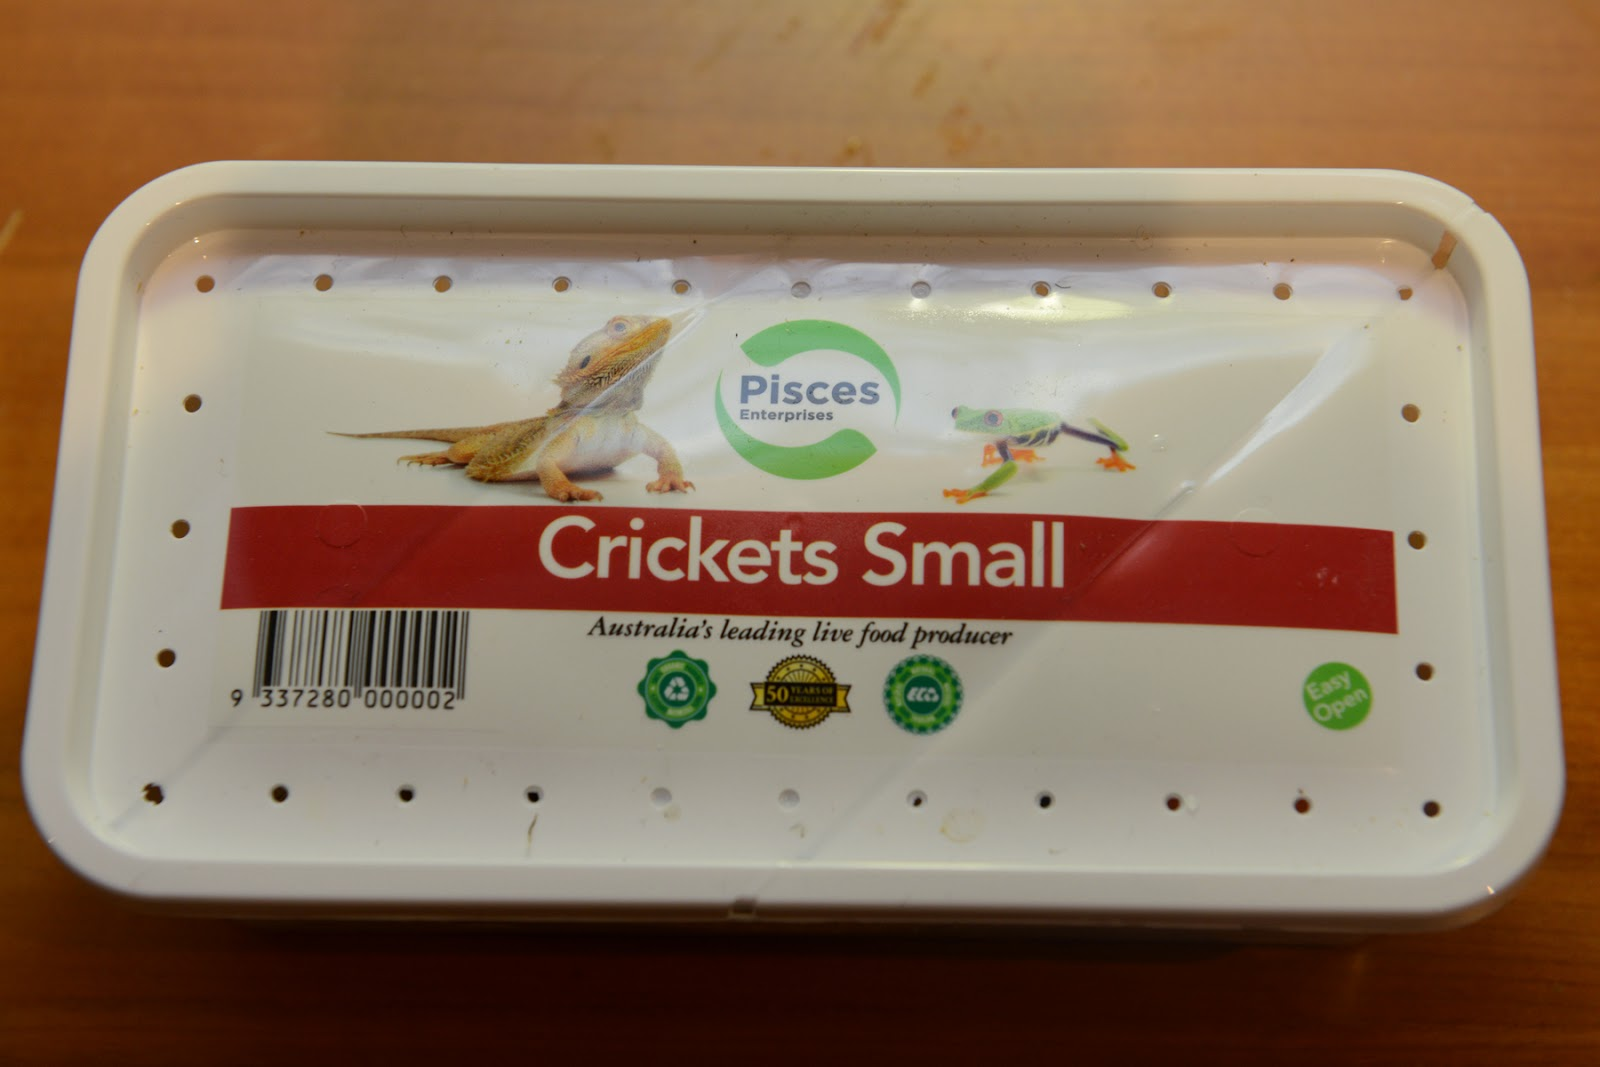 crickets live feed insects protein food security